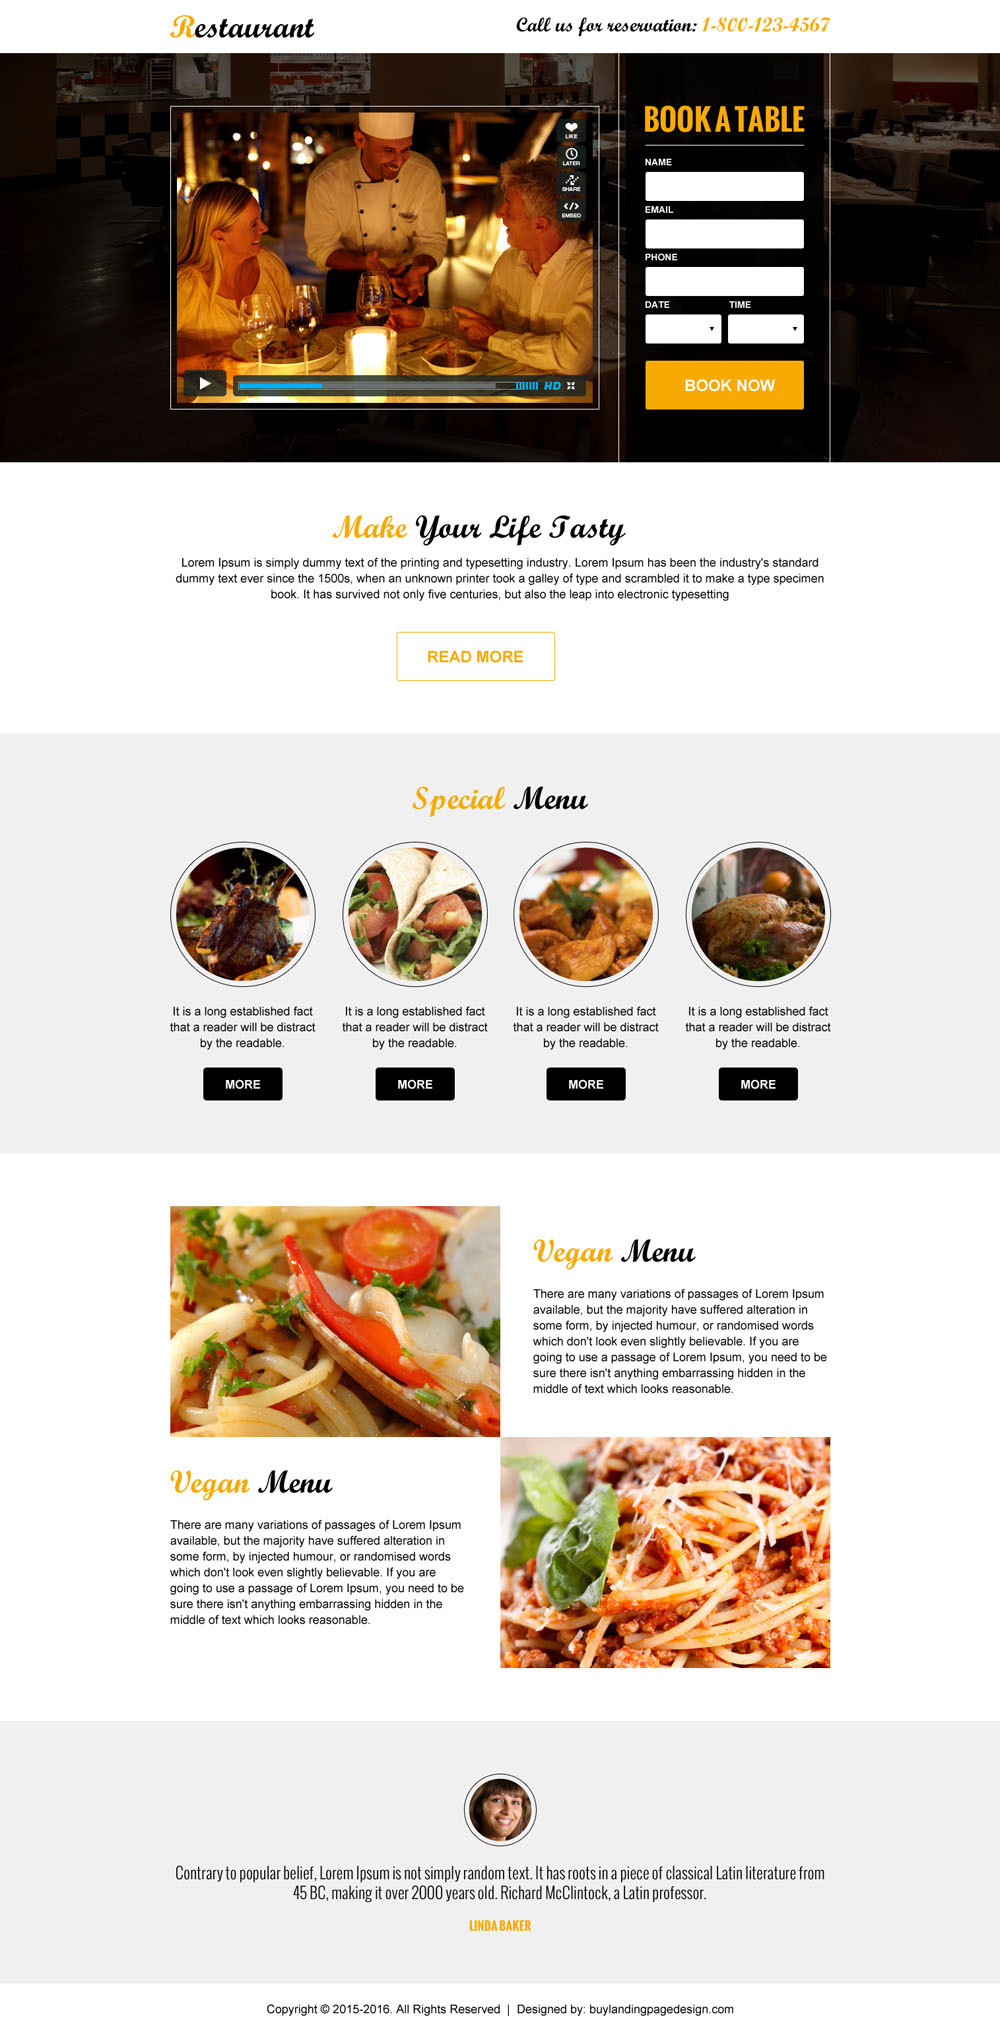 restaurant-booking-lead-gen-converting-video-landing-page-design-003